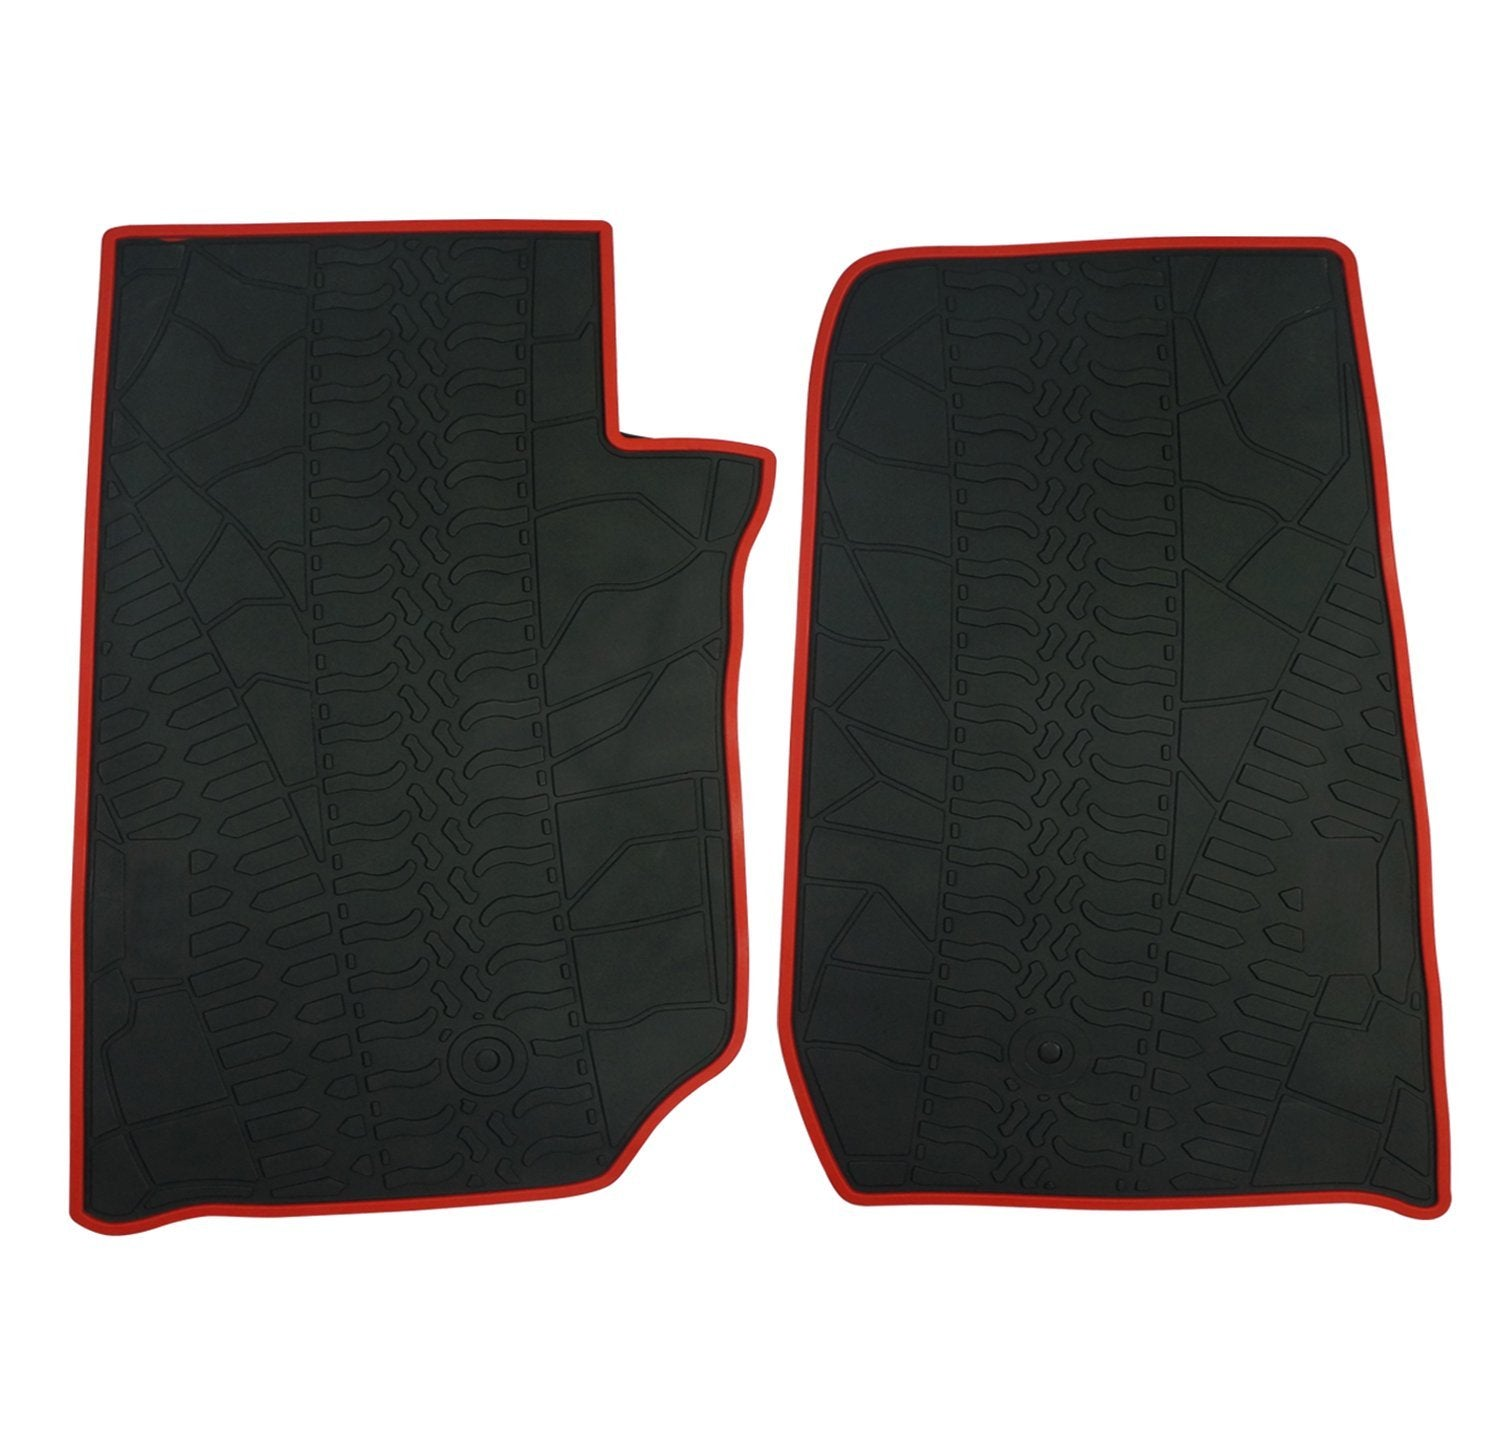 wildrock4x4 Floor Mats 2 door Jeep Wrangler JK 14-17 Runner Floor Mats Set Heavy Duty